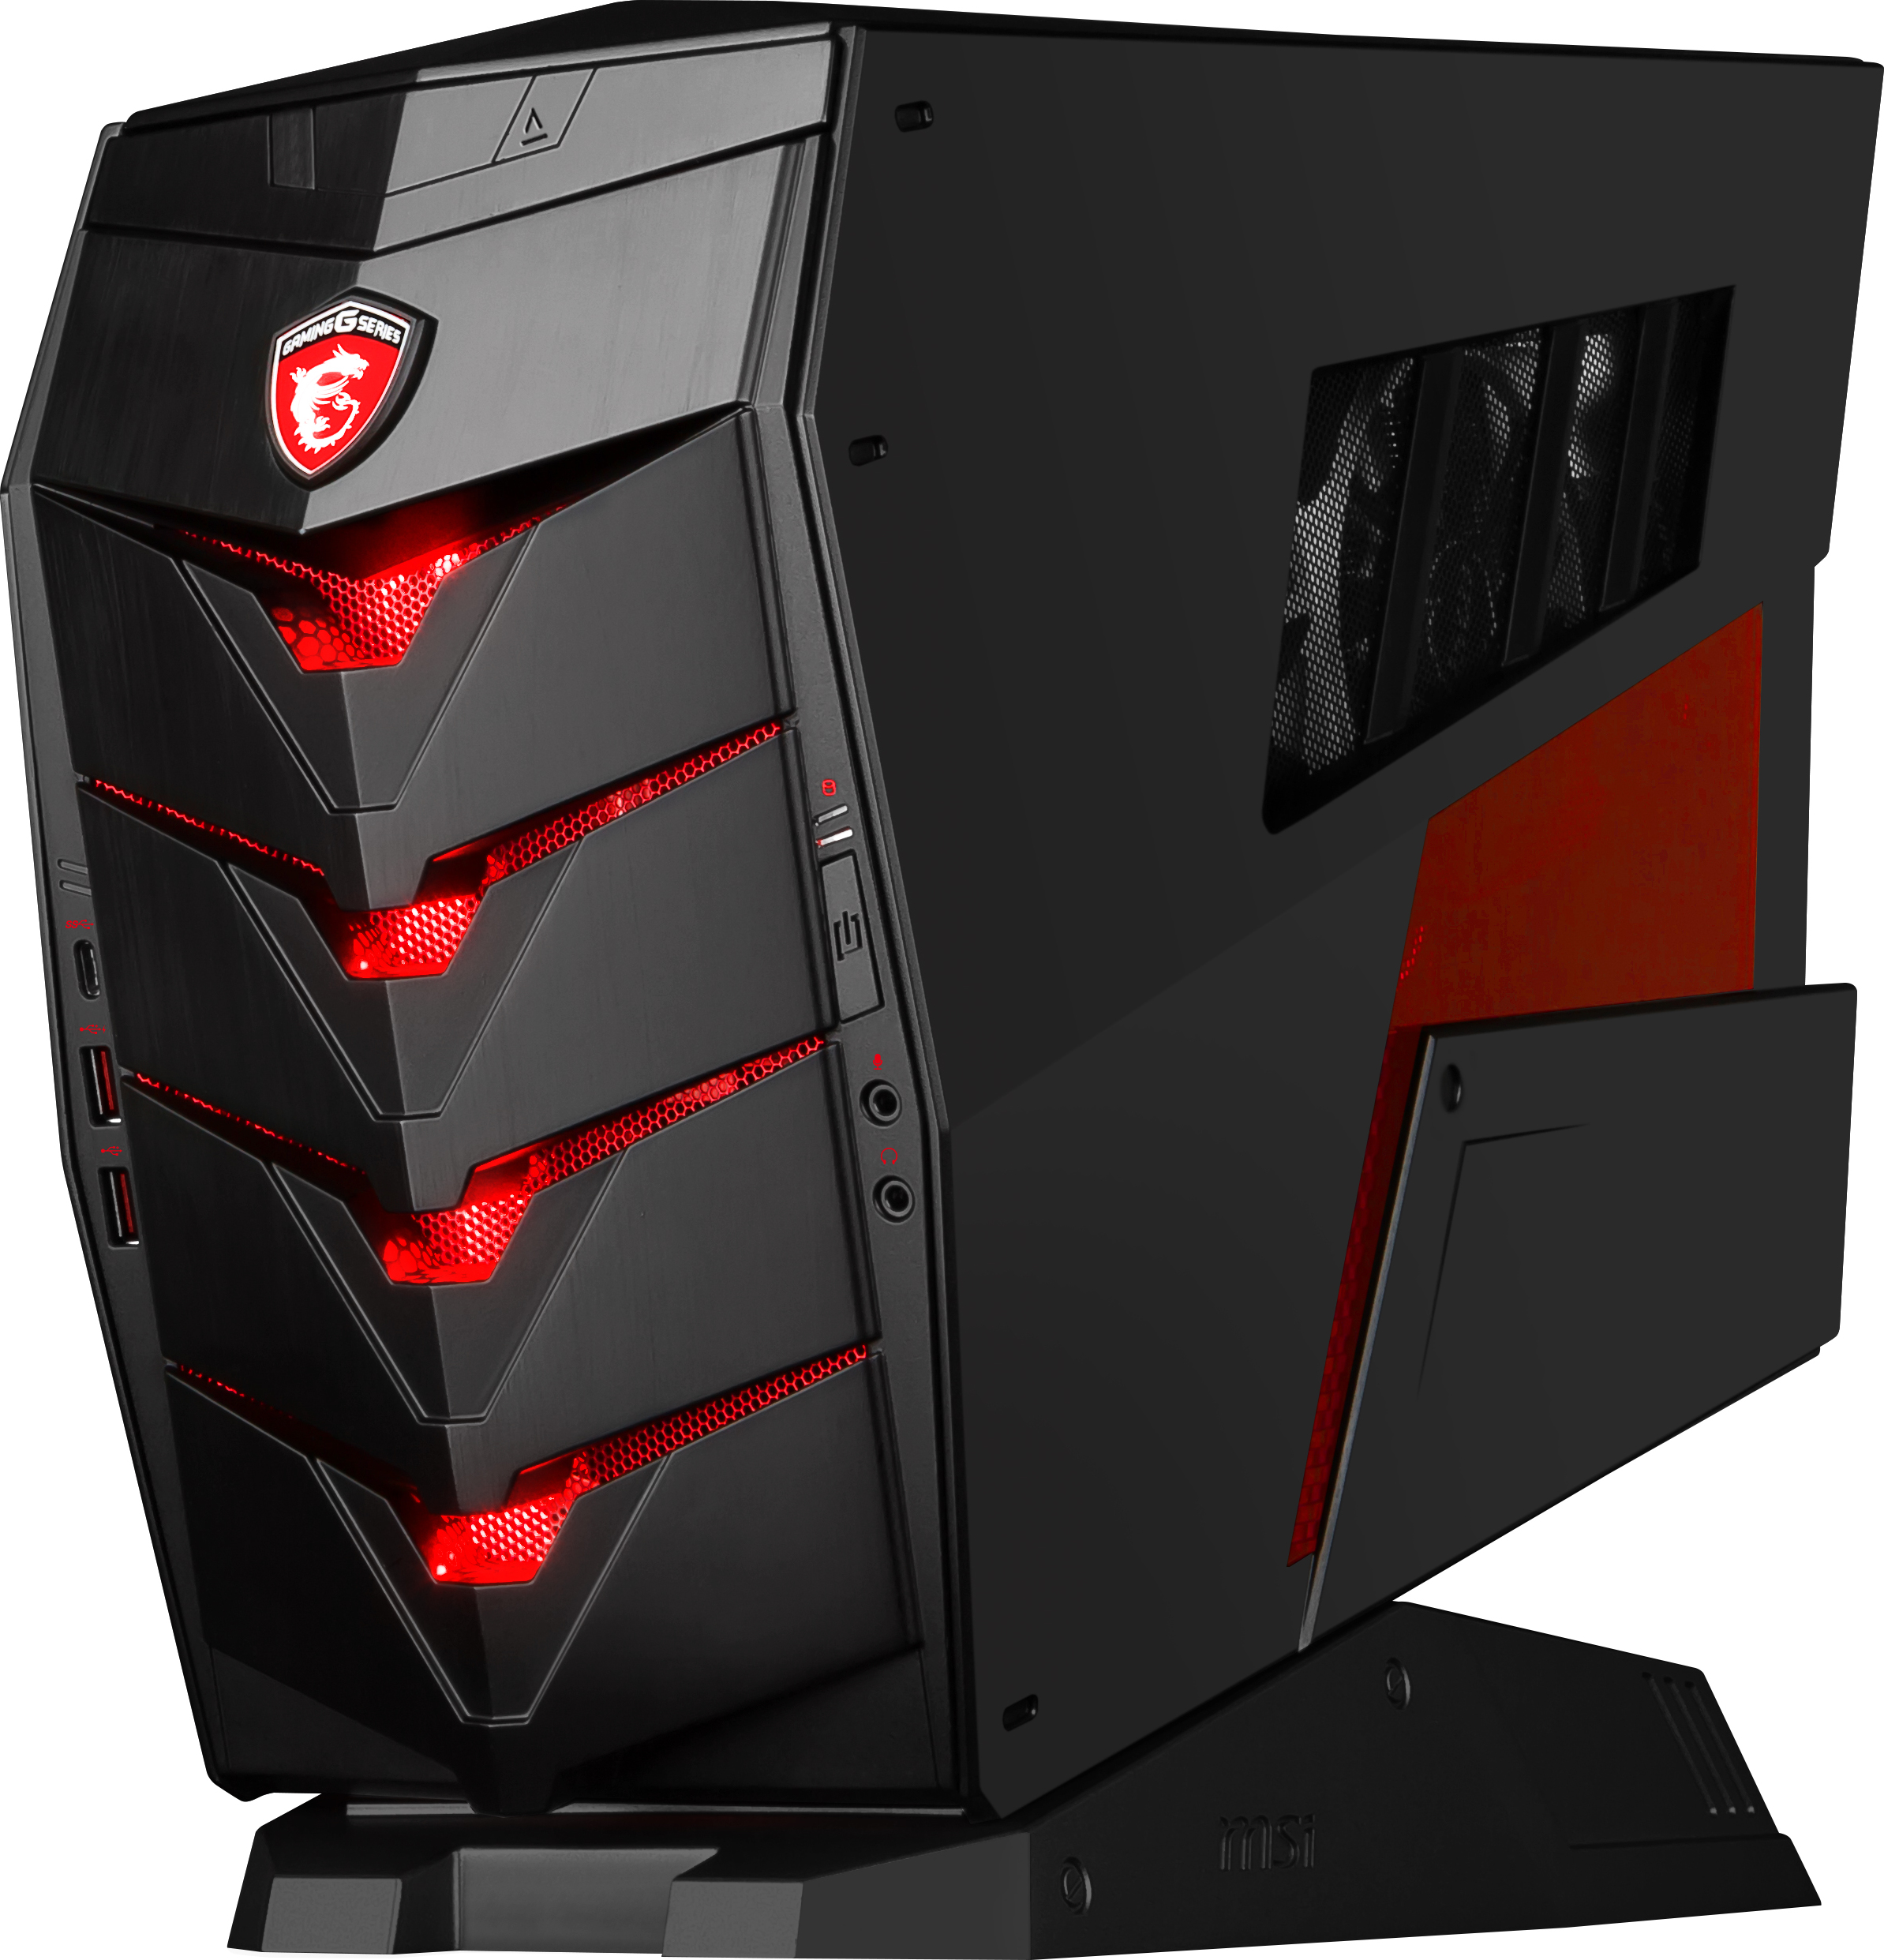 msi aegis l 39 ordinateur de bureau taill pour le gaming. Black Bedroom Furniture Sets. Home Design Ideas